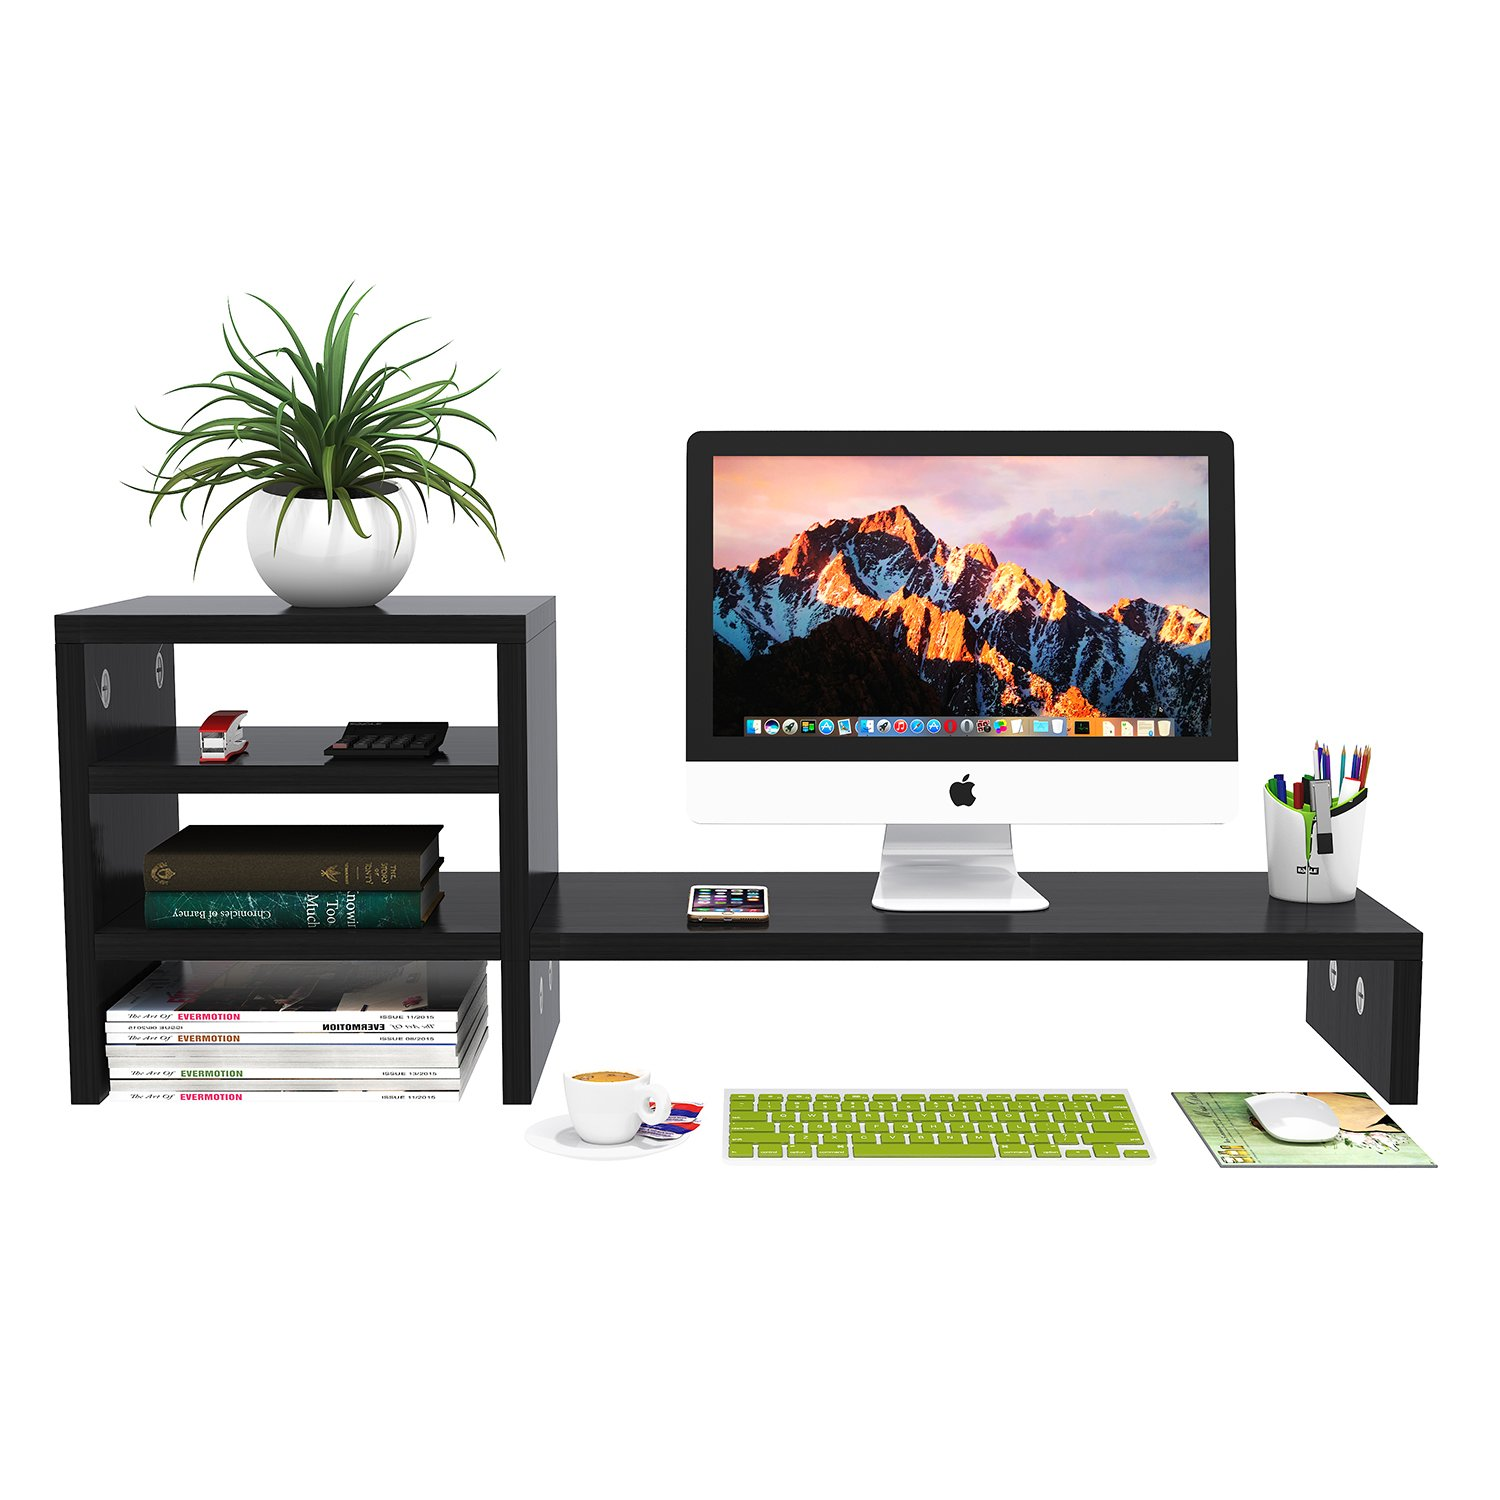 Ufine Wood Computer Monitor Stand Riser with 2 Tier Desk Storage Organizer Shelf Universal PC LCD Screen Holder Mobile Notebook Boook Corner Rack for Home Office (Black,Large,31.5'',Space Saving) by Ufine